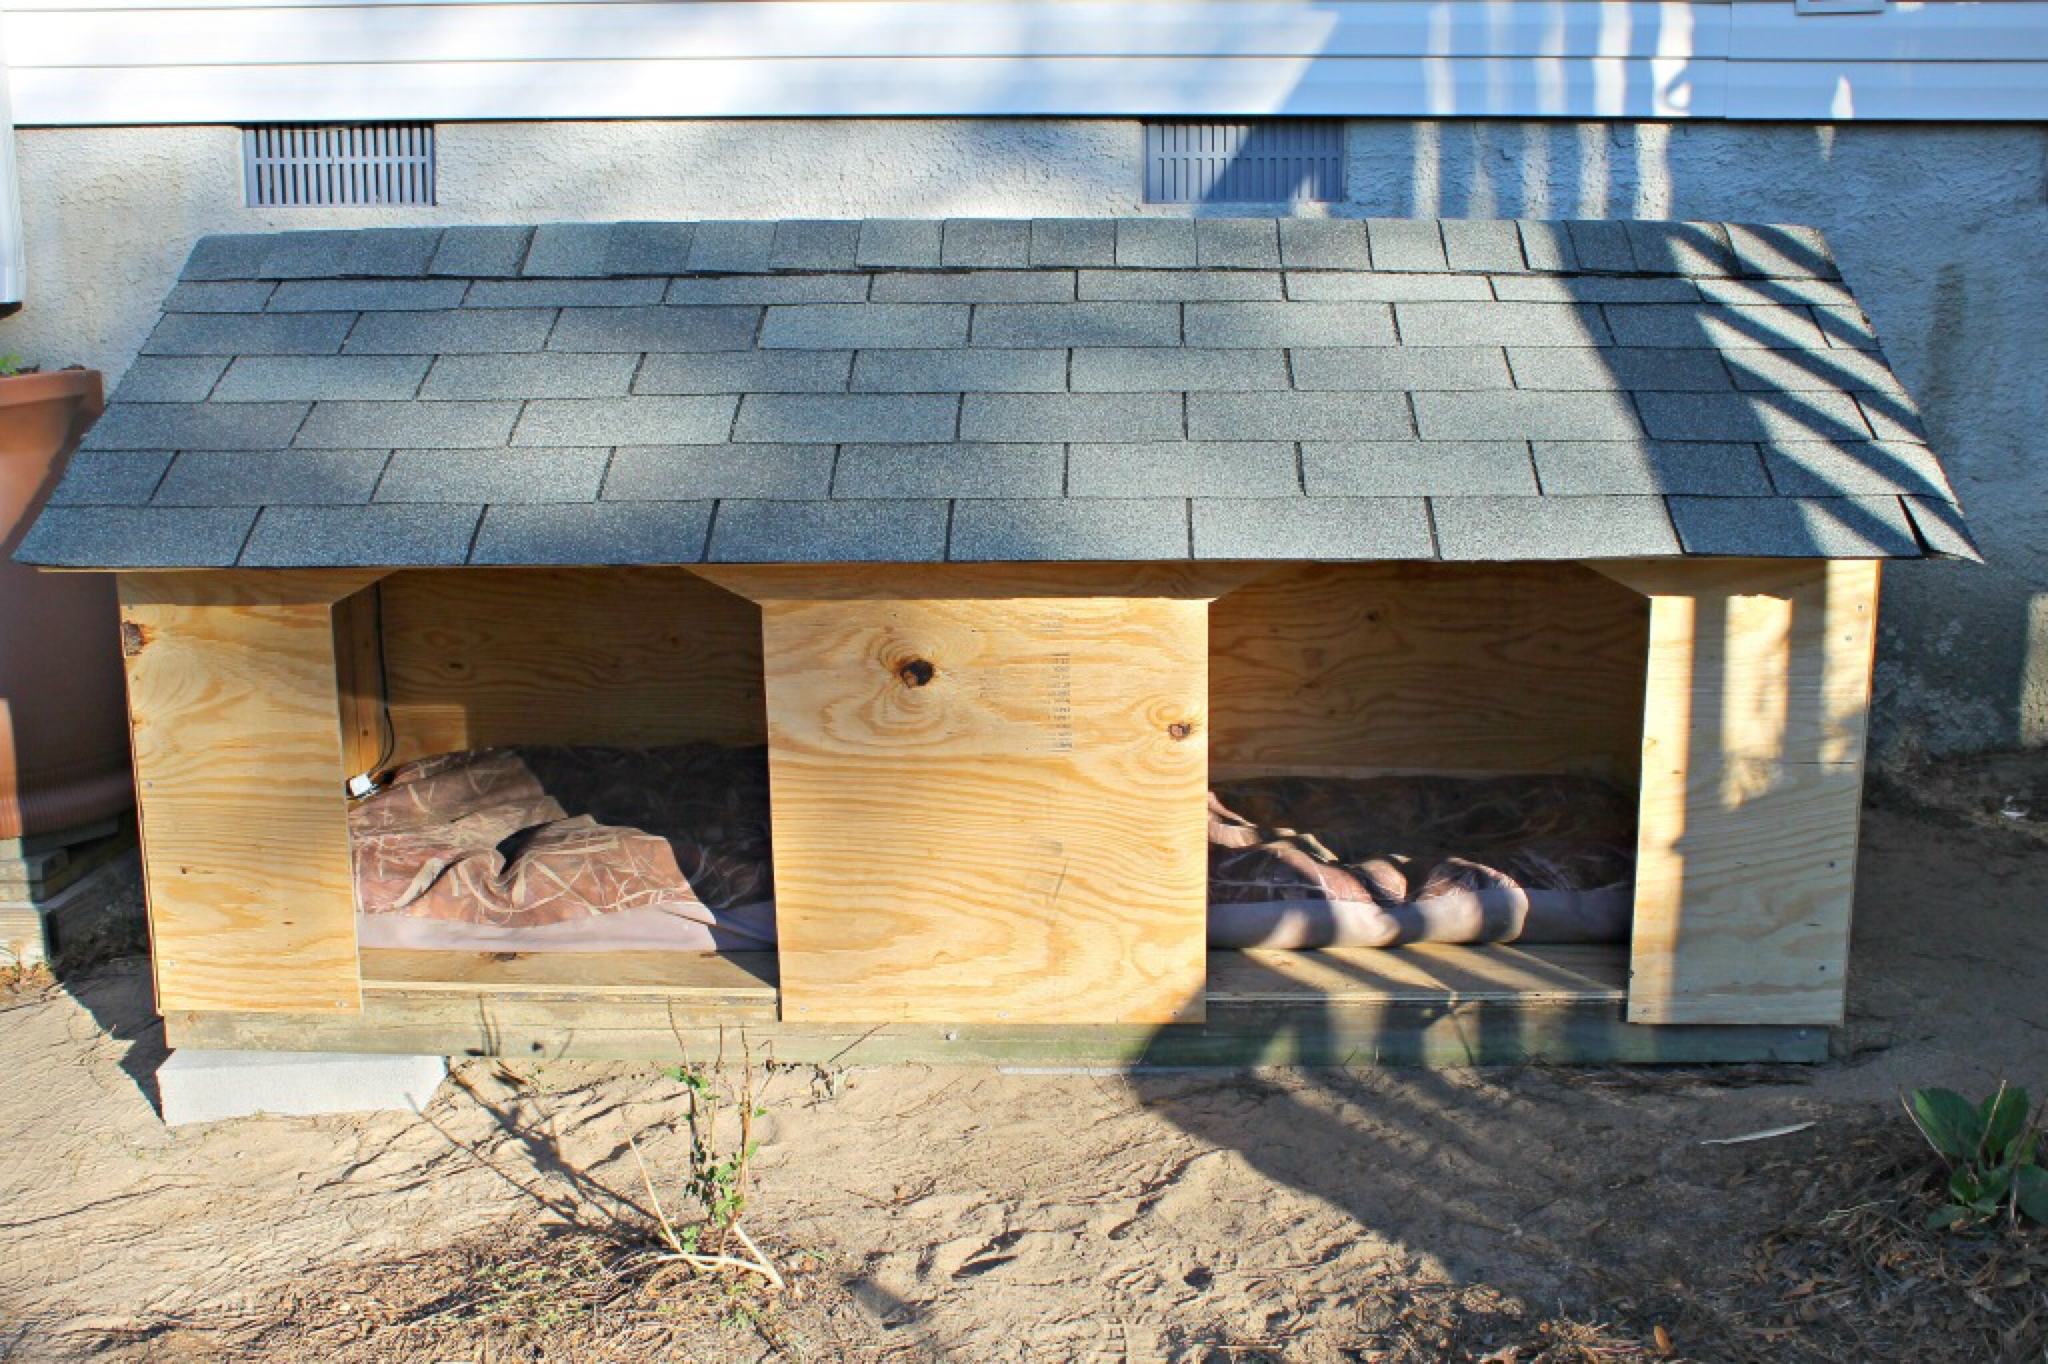 5 droolworthy diy dog house plans | healthy paws